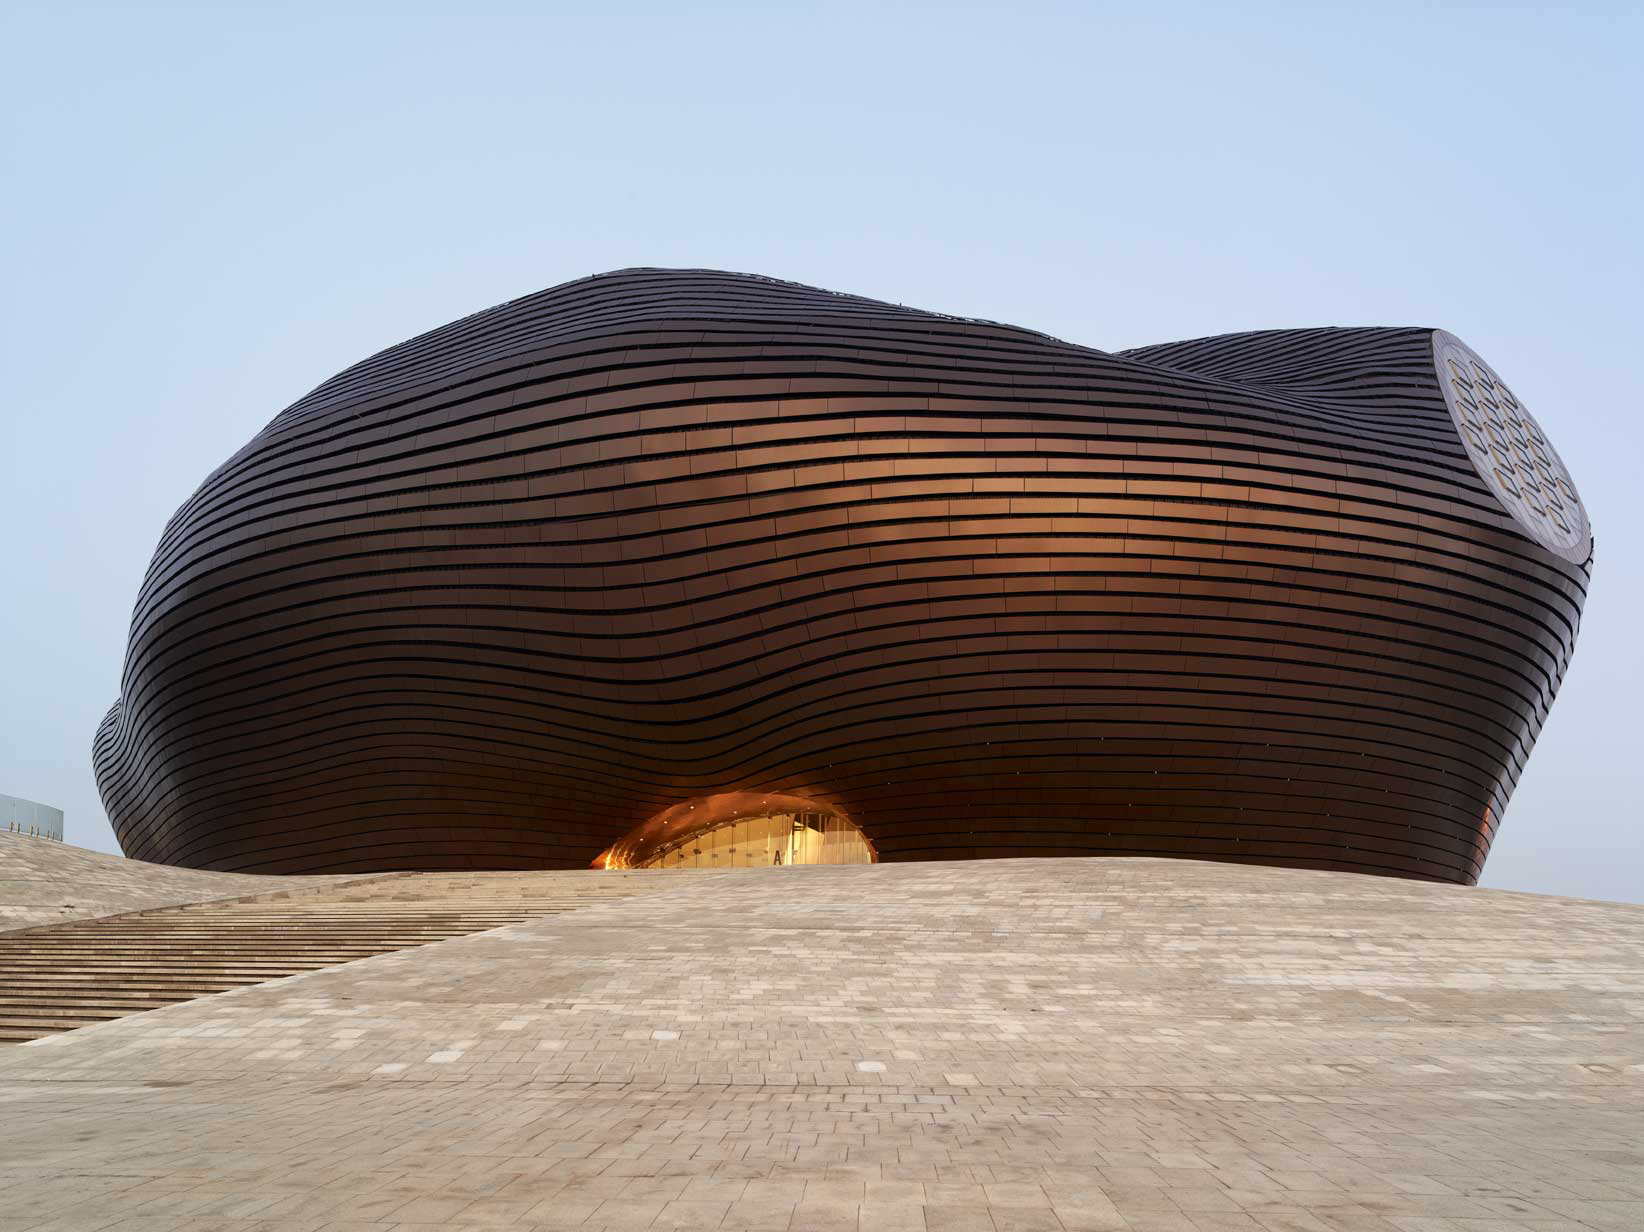 Ordos Museum by MAD Architects in Inner Mongolia, China